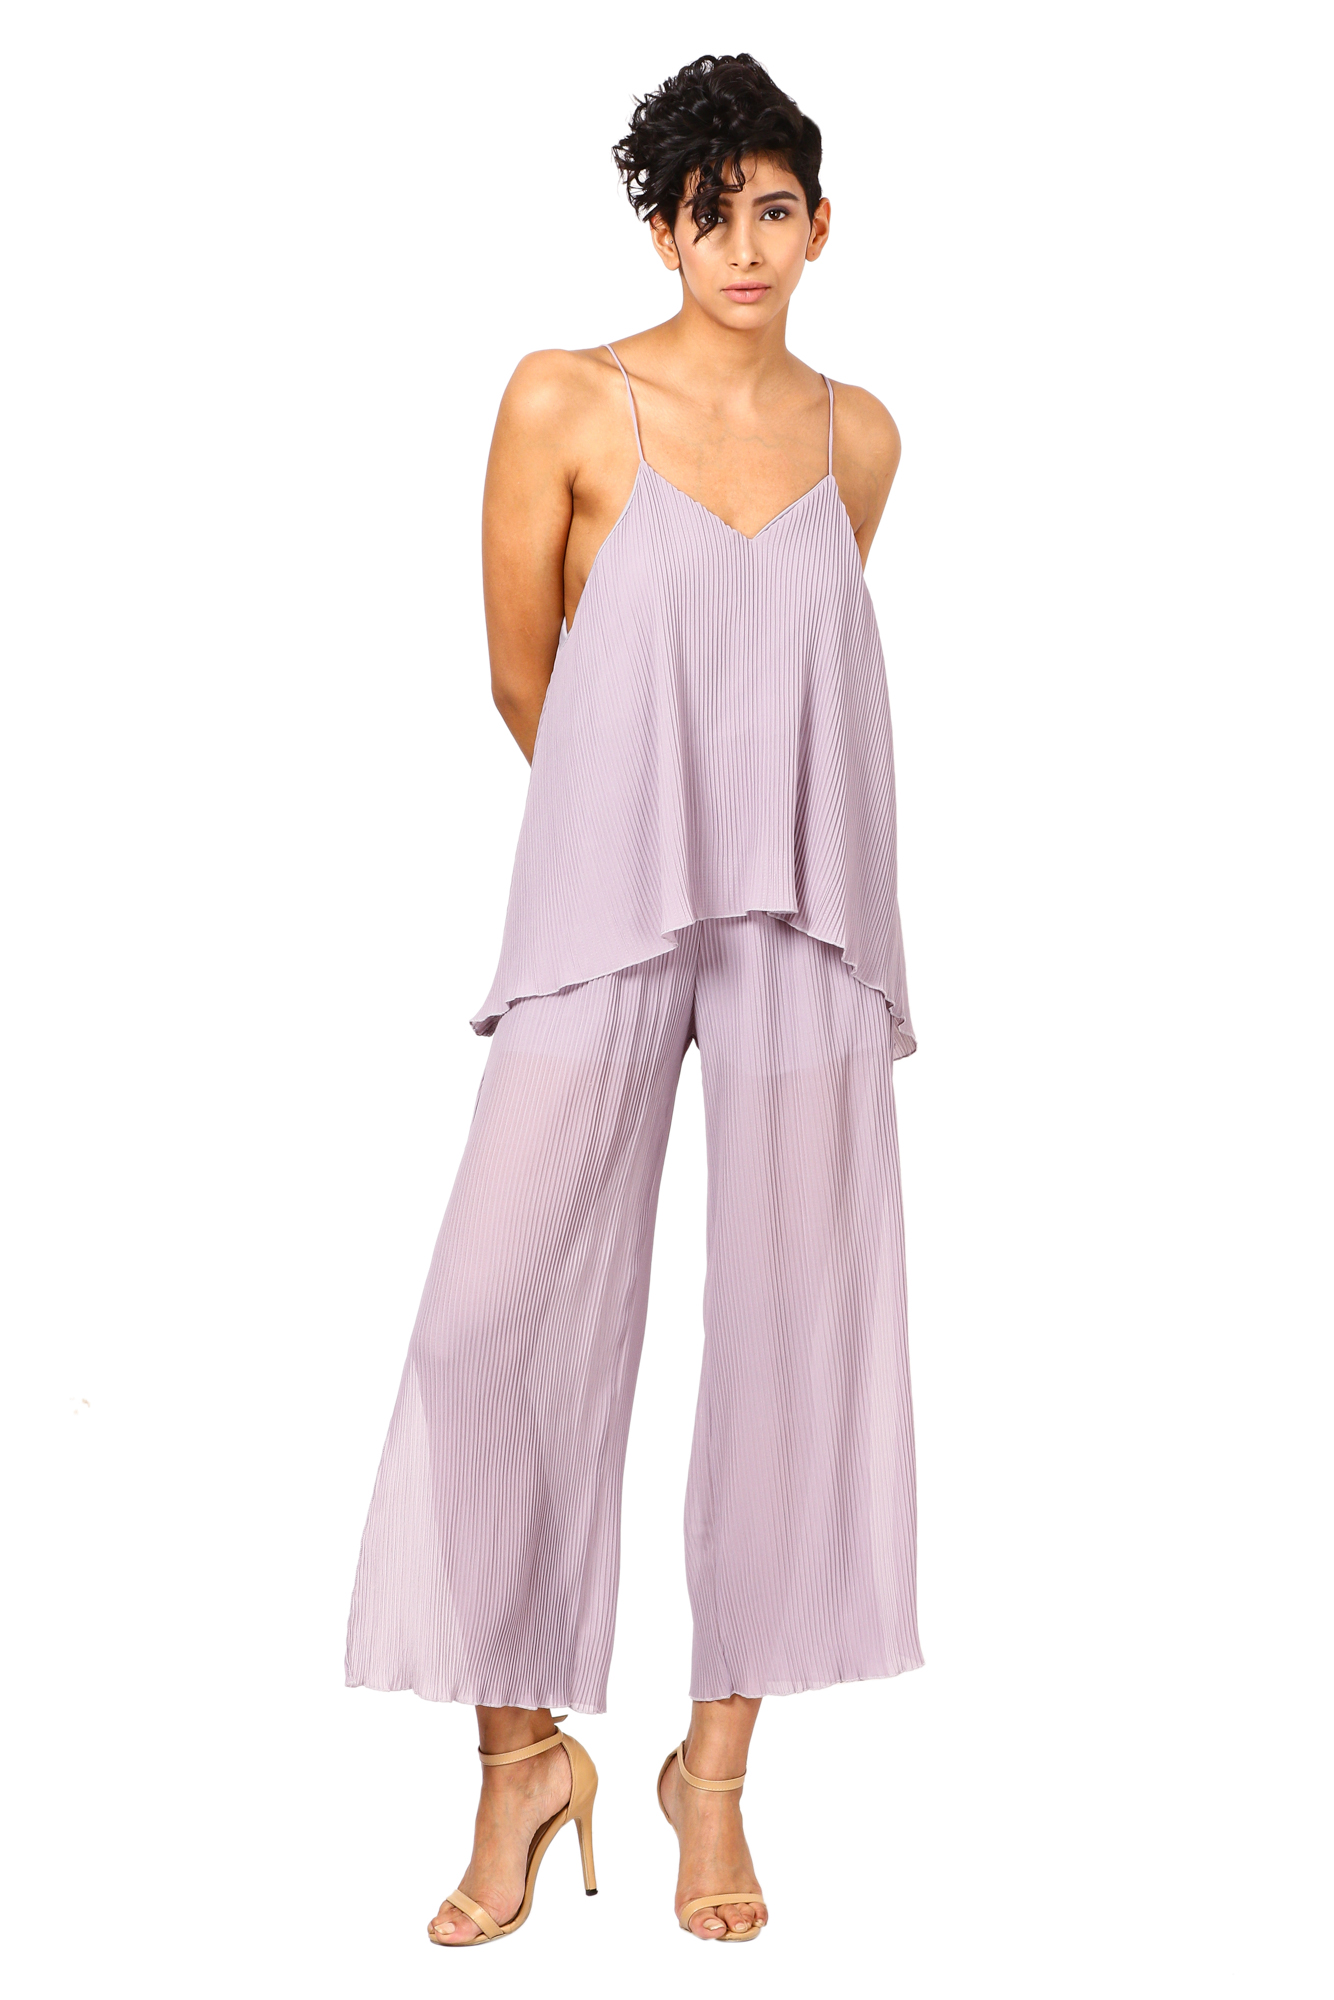 jumpsuits for women modny.in